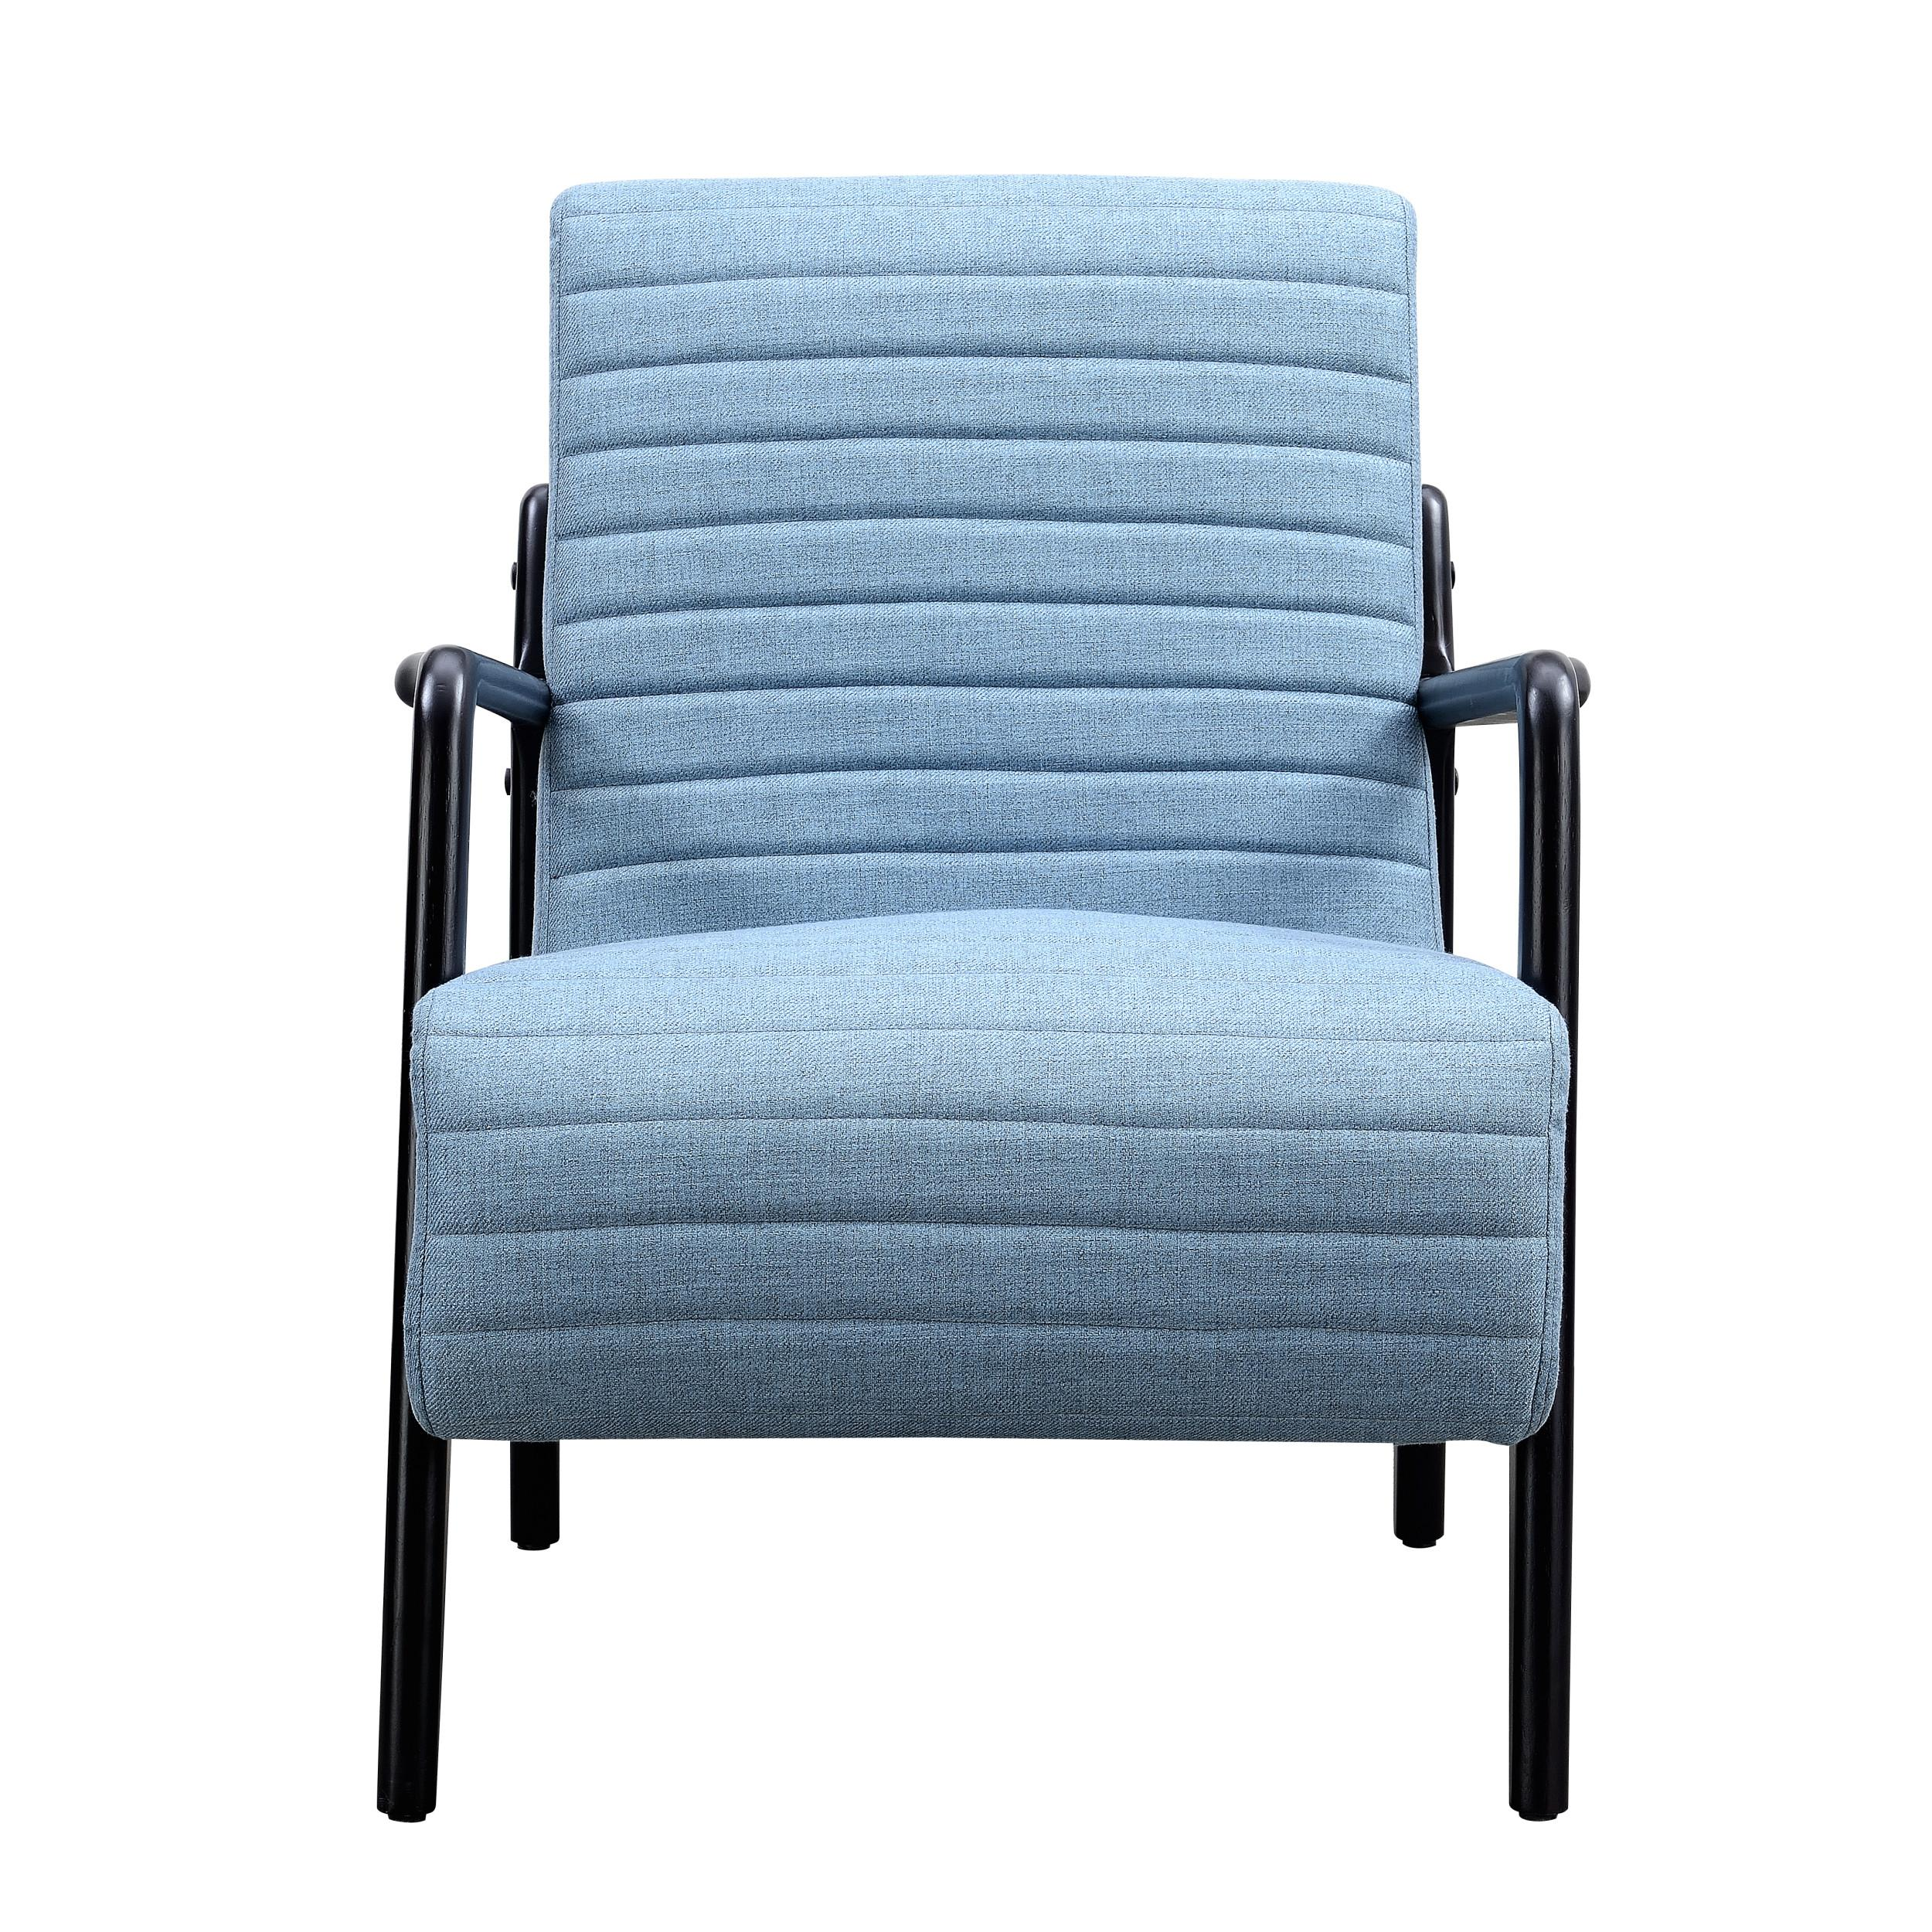 ... Modern Accent Chair Click To Enlarge ...  sc 1 st  The Classy Home & Emerald Home Zola Sky Blue Black Fabric Modern Accent Chair | The ...